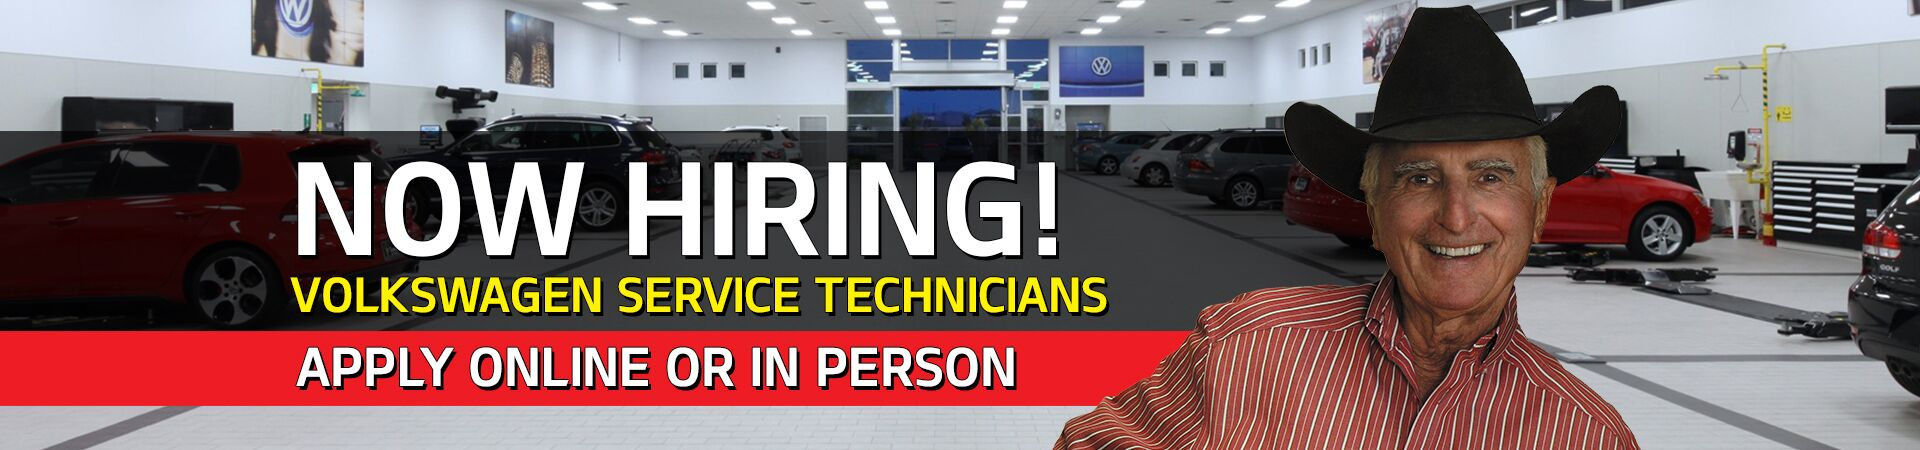 Now Hiring Service Technicians